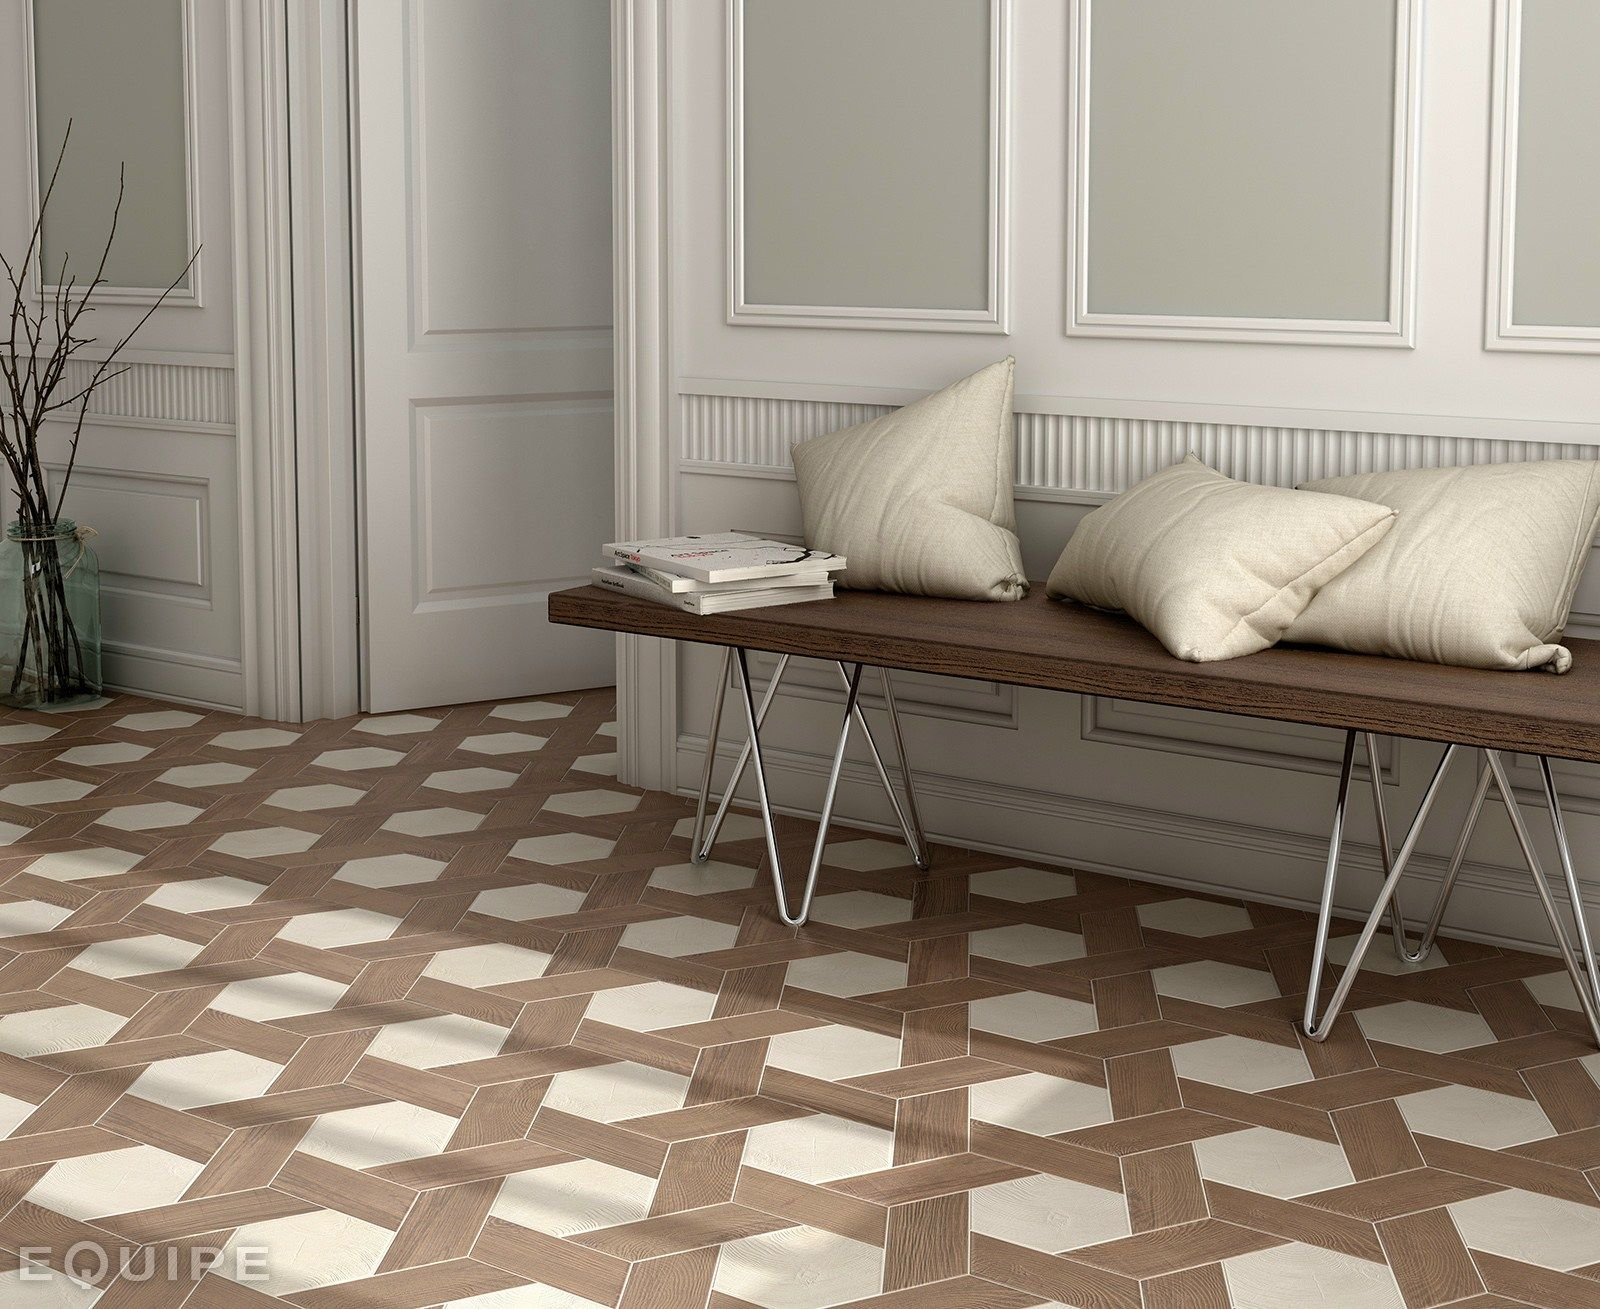 Ceramic floor tiles hexawood by equipe ceramicas salle de bain ceramic floor tiles hexawood by equipe ceramicas dailygadgetfo Image collections